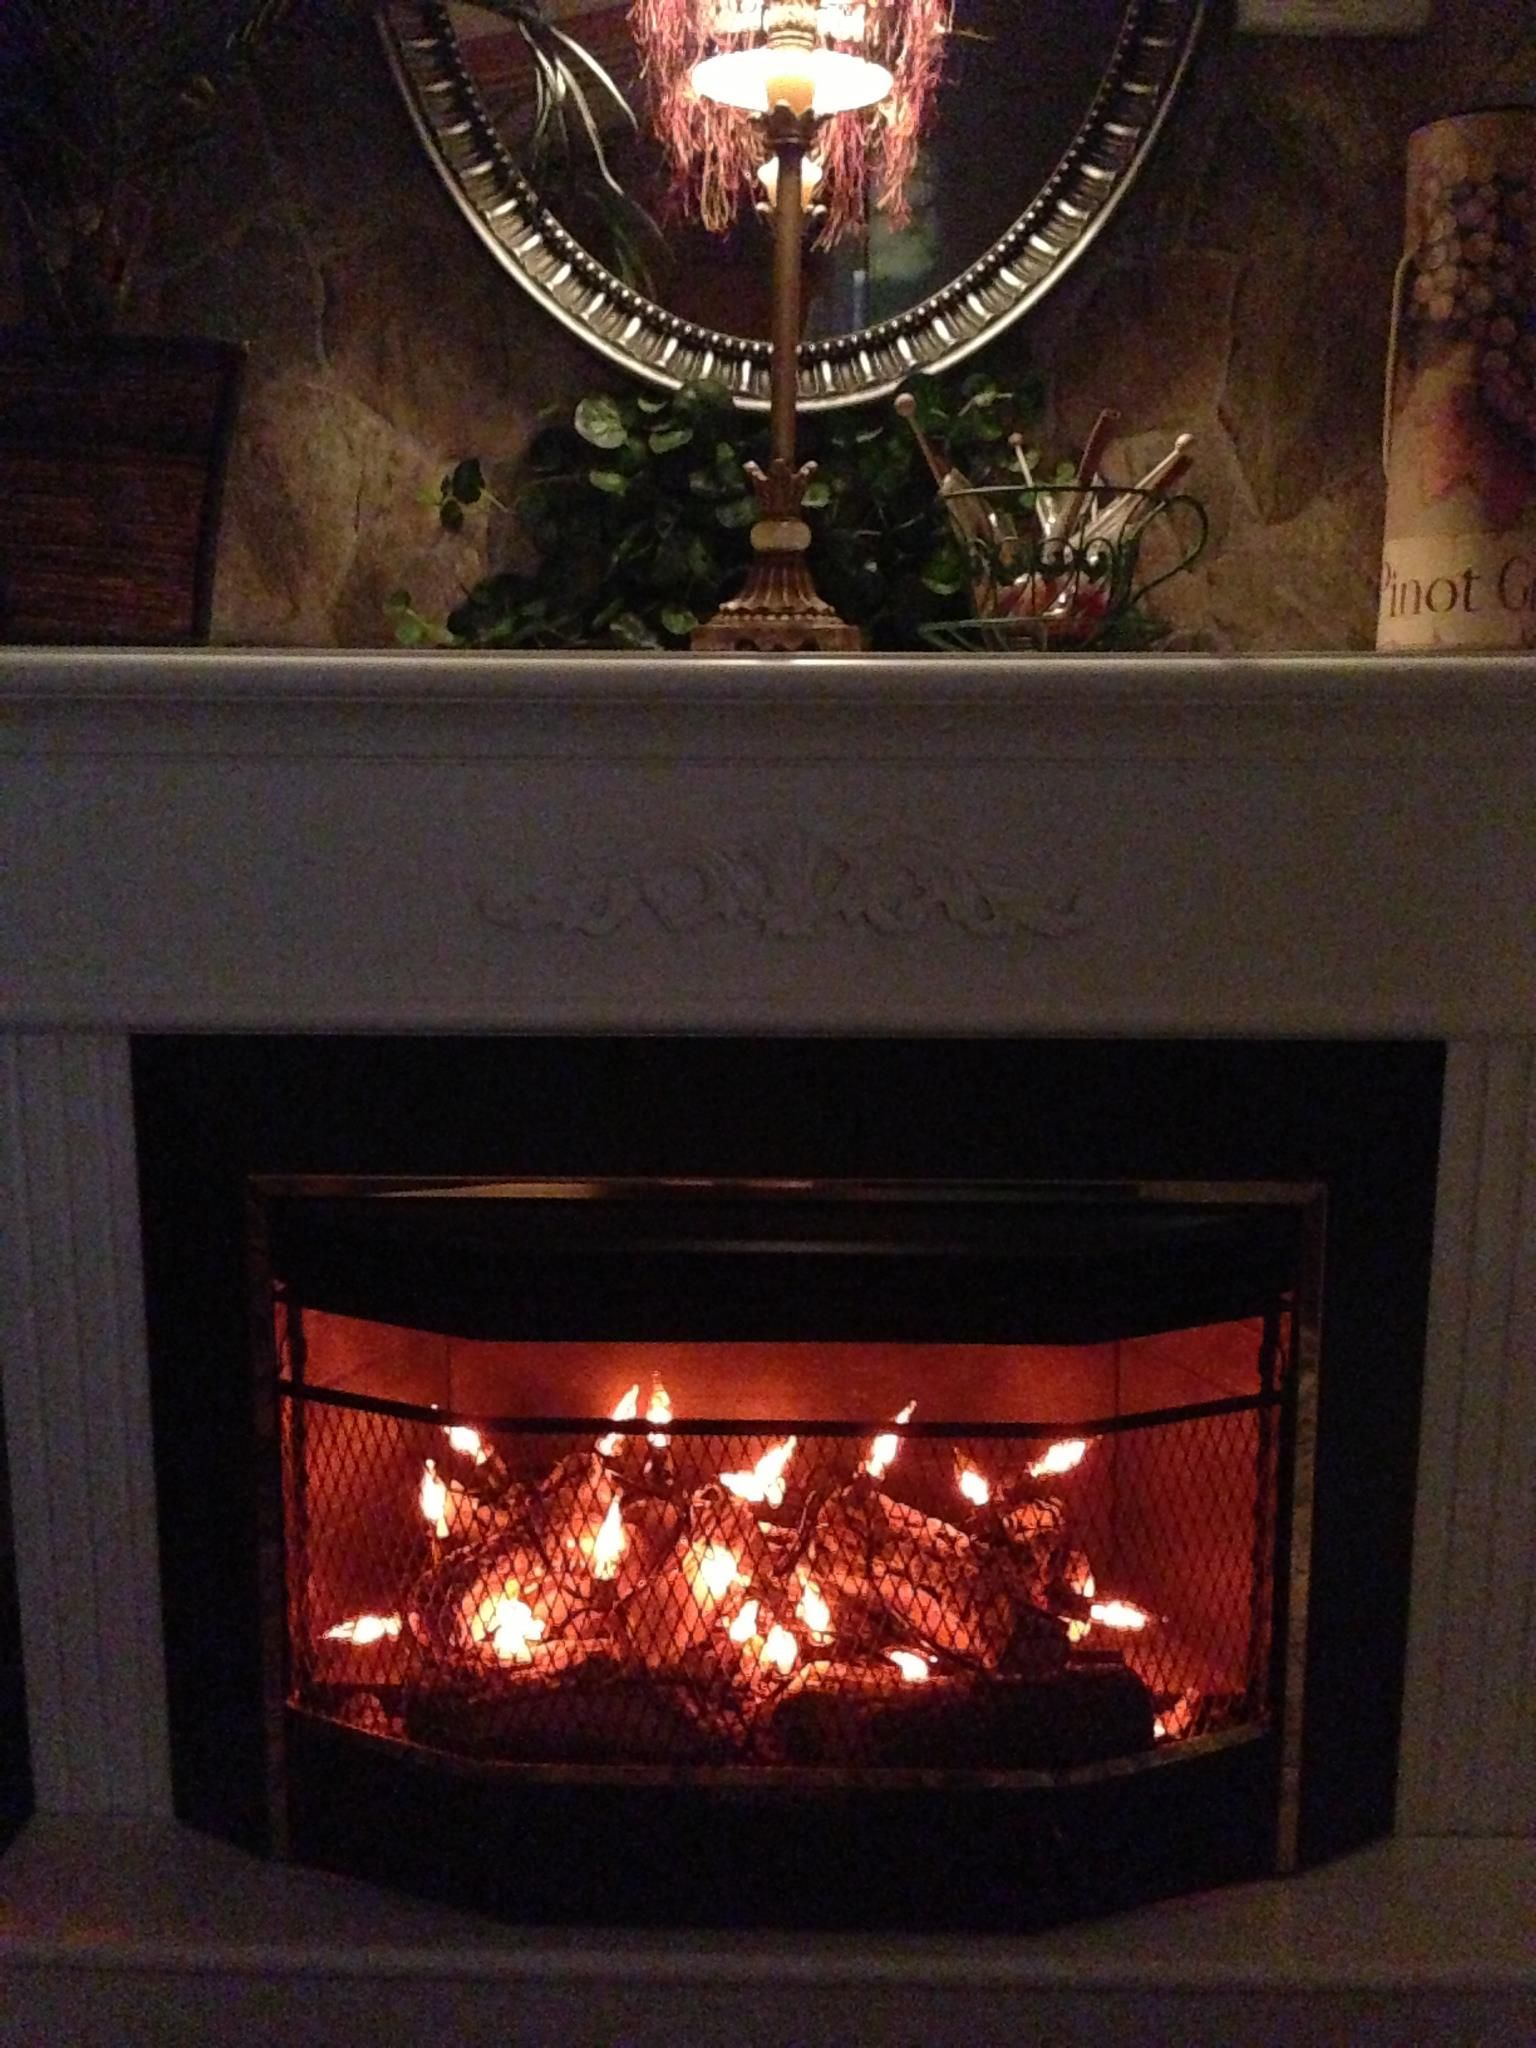 One Of My Gas Fireplaces That I Don T Have Hooked Up To Gas I